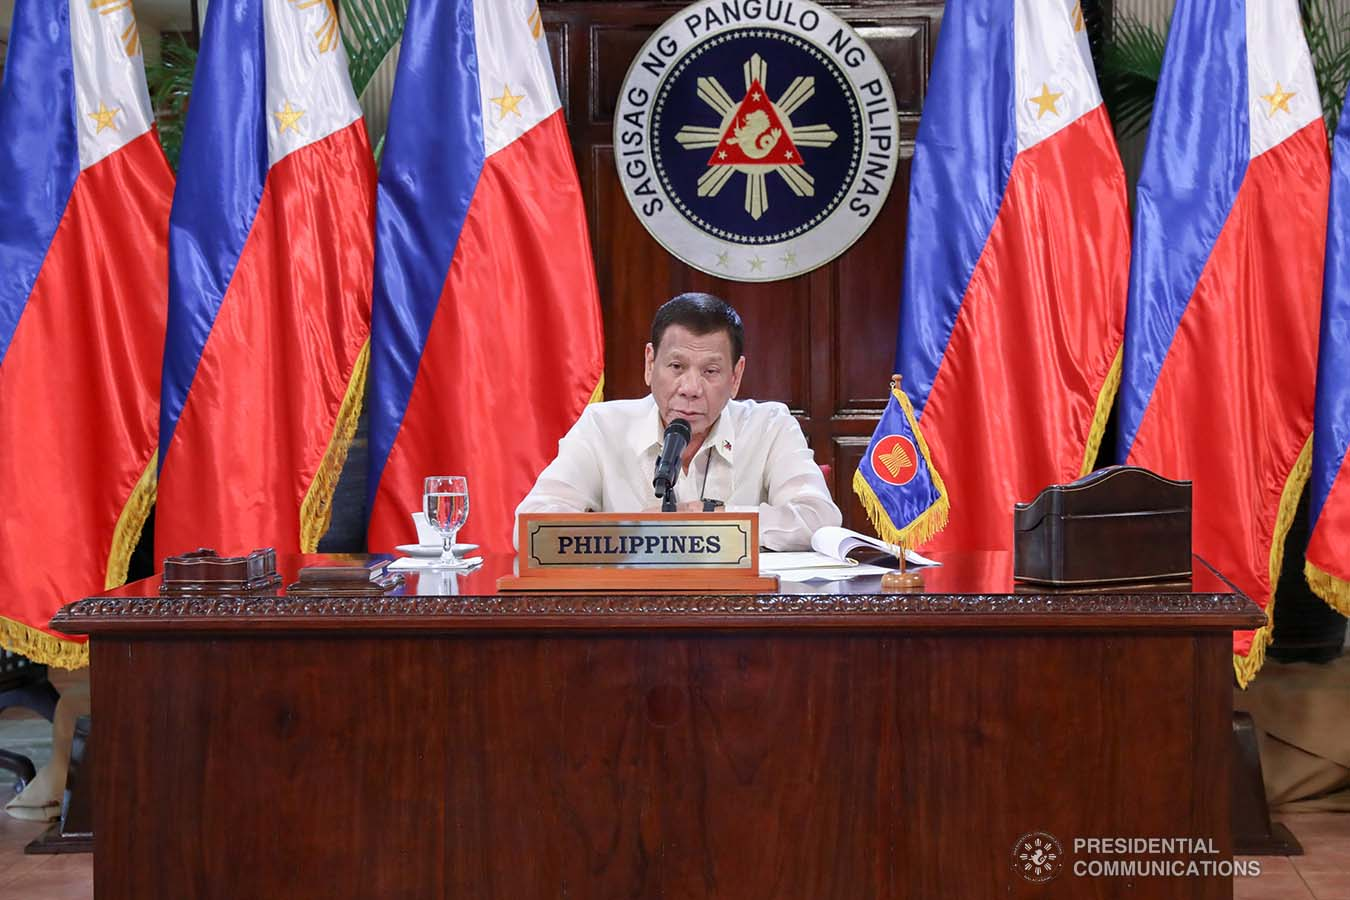 President Rodrigo Roa Duterte gives his intervention as he joins other leaders from the Association of Southeast Asian Nations (ASEAN) member countries during the special ASEAN Summit on Covid-19 video conference at the Malago Clubhouse in Malacañang on April 14, 2020. TOTO LOZANO/PRESIDENTIAL PHOTOS